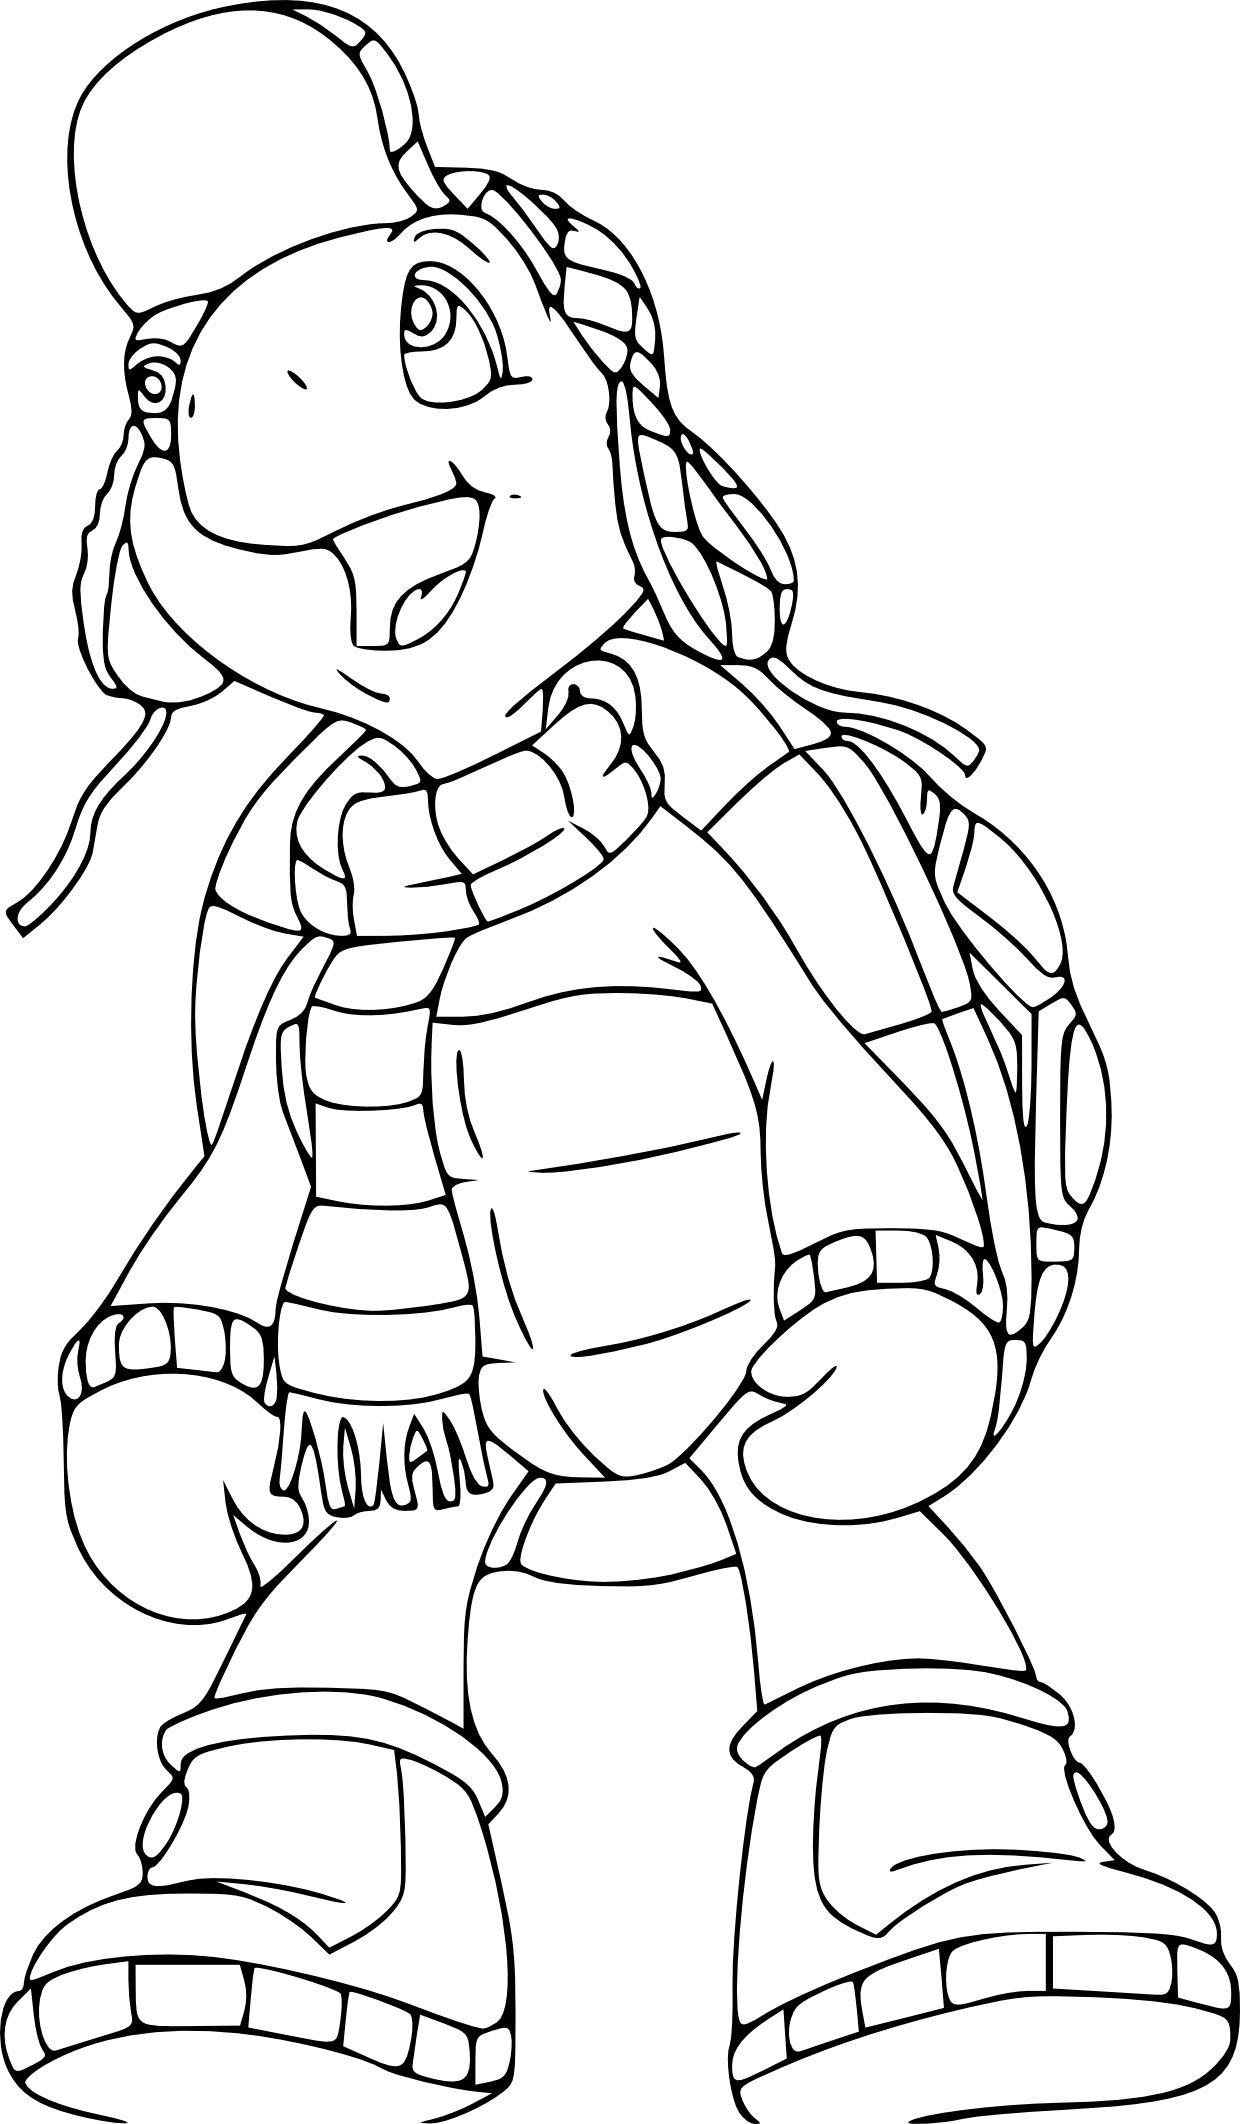 Coloriage Franklin